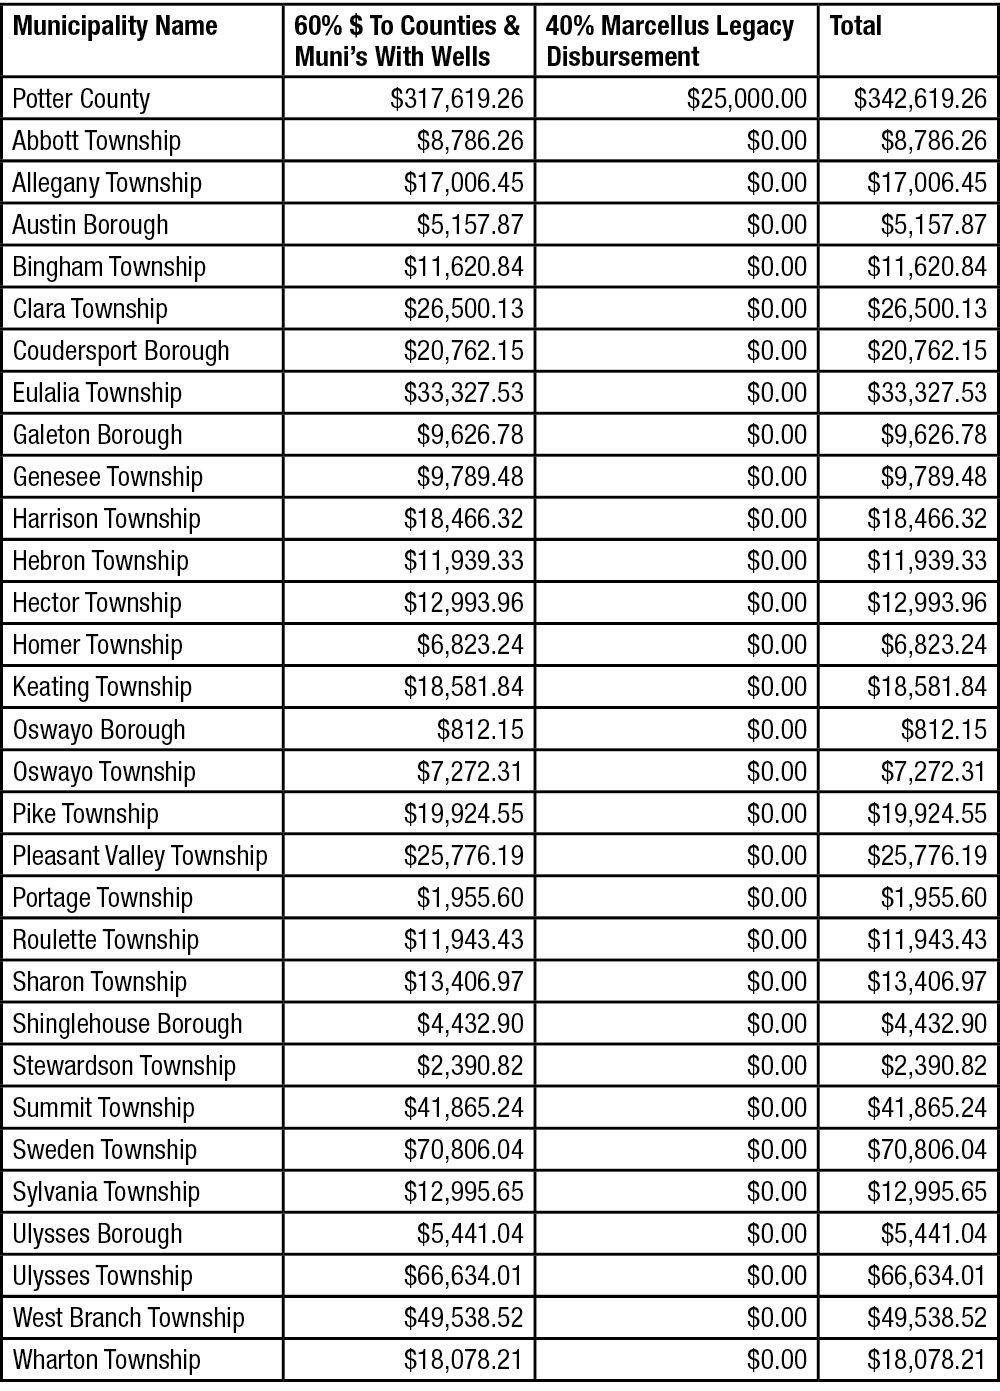 2019 Impact Fees Distributed to Potter County & Municipalities